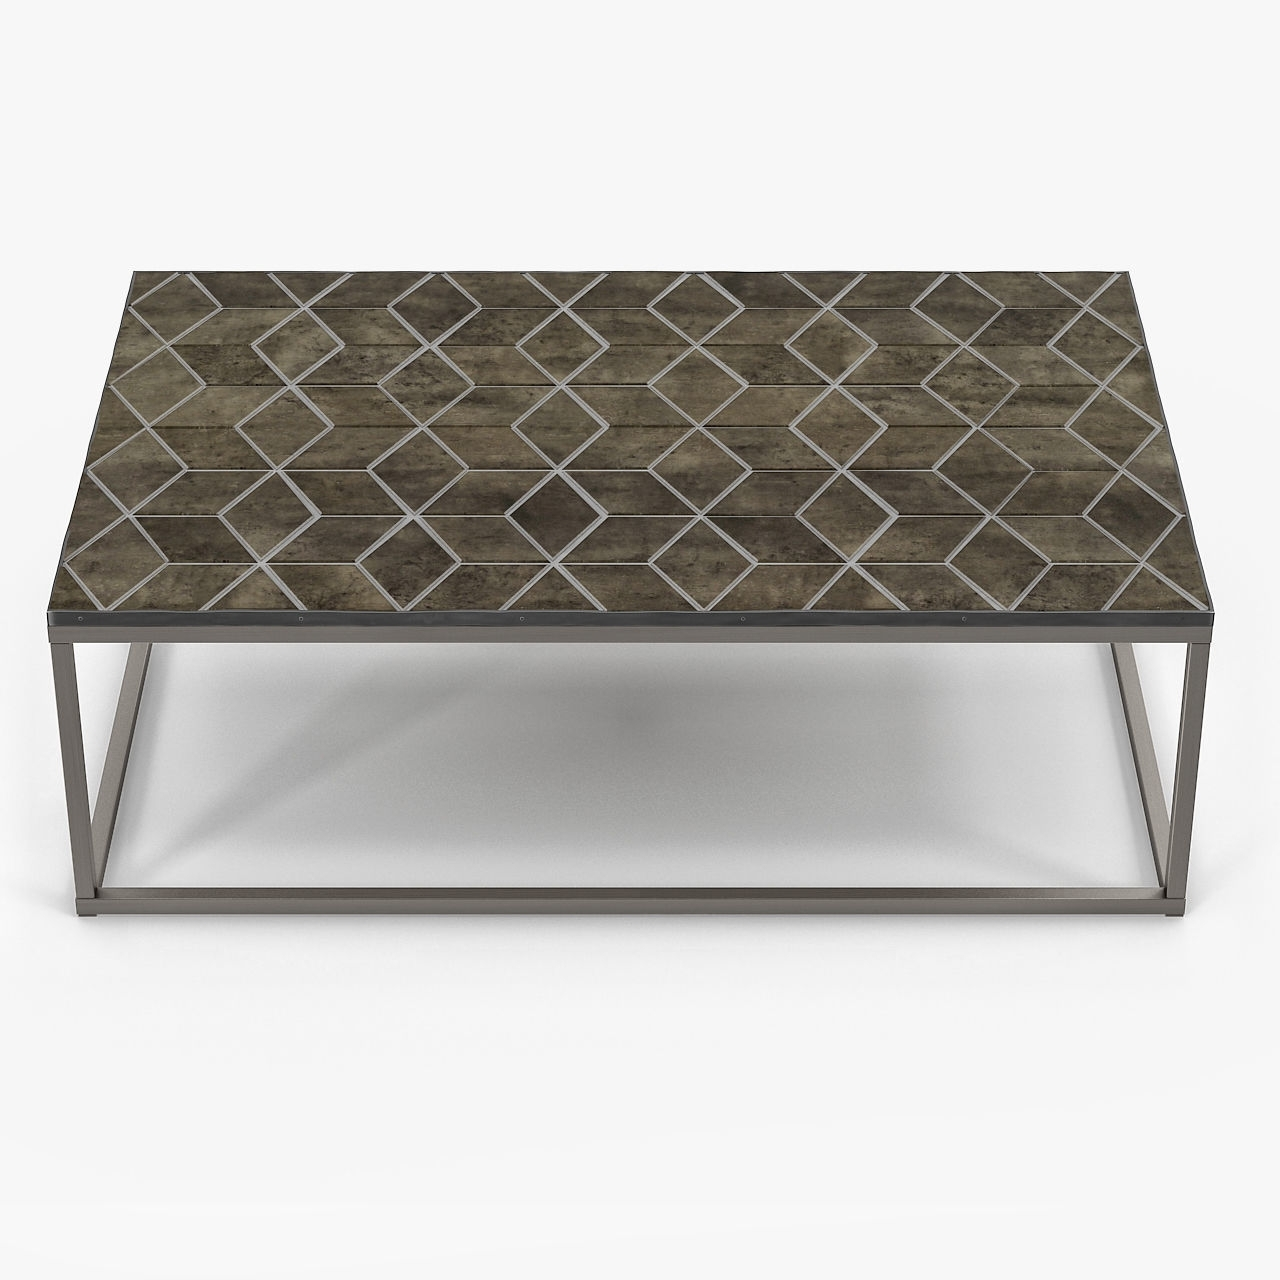 3D Restoration Hardware Metall Parquet Coffee Table in Parquet Coffee Tables (Image 2 of 30)